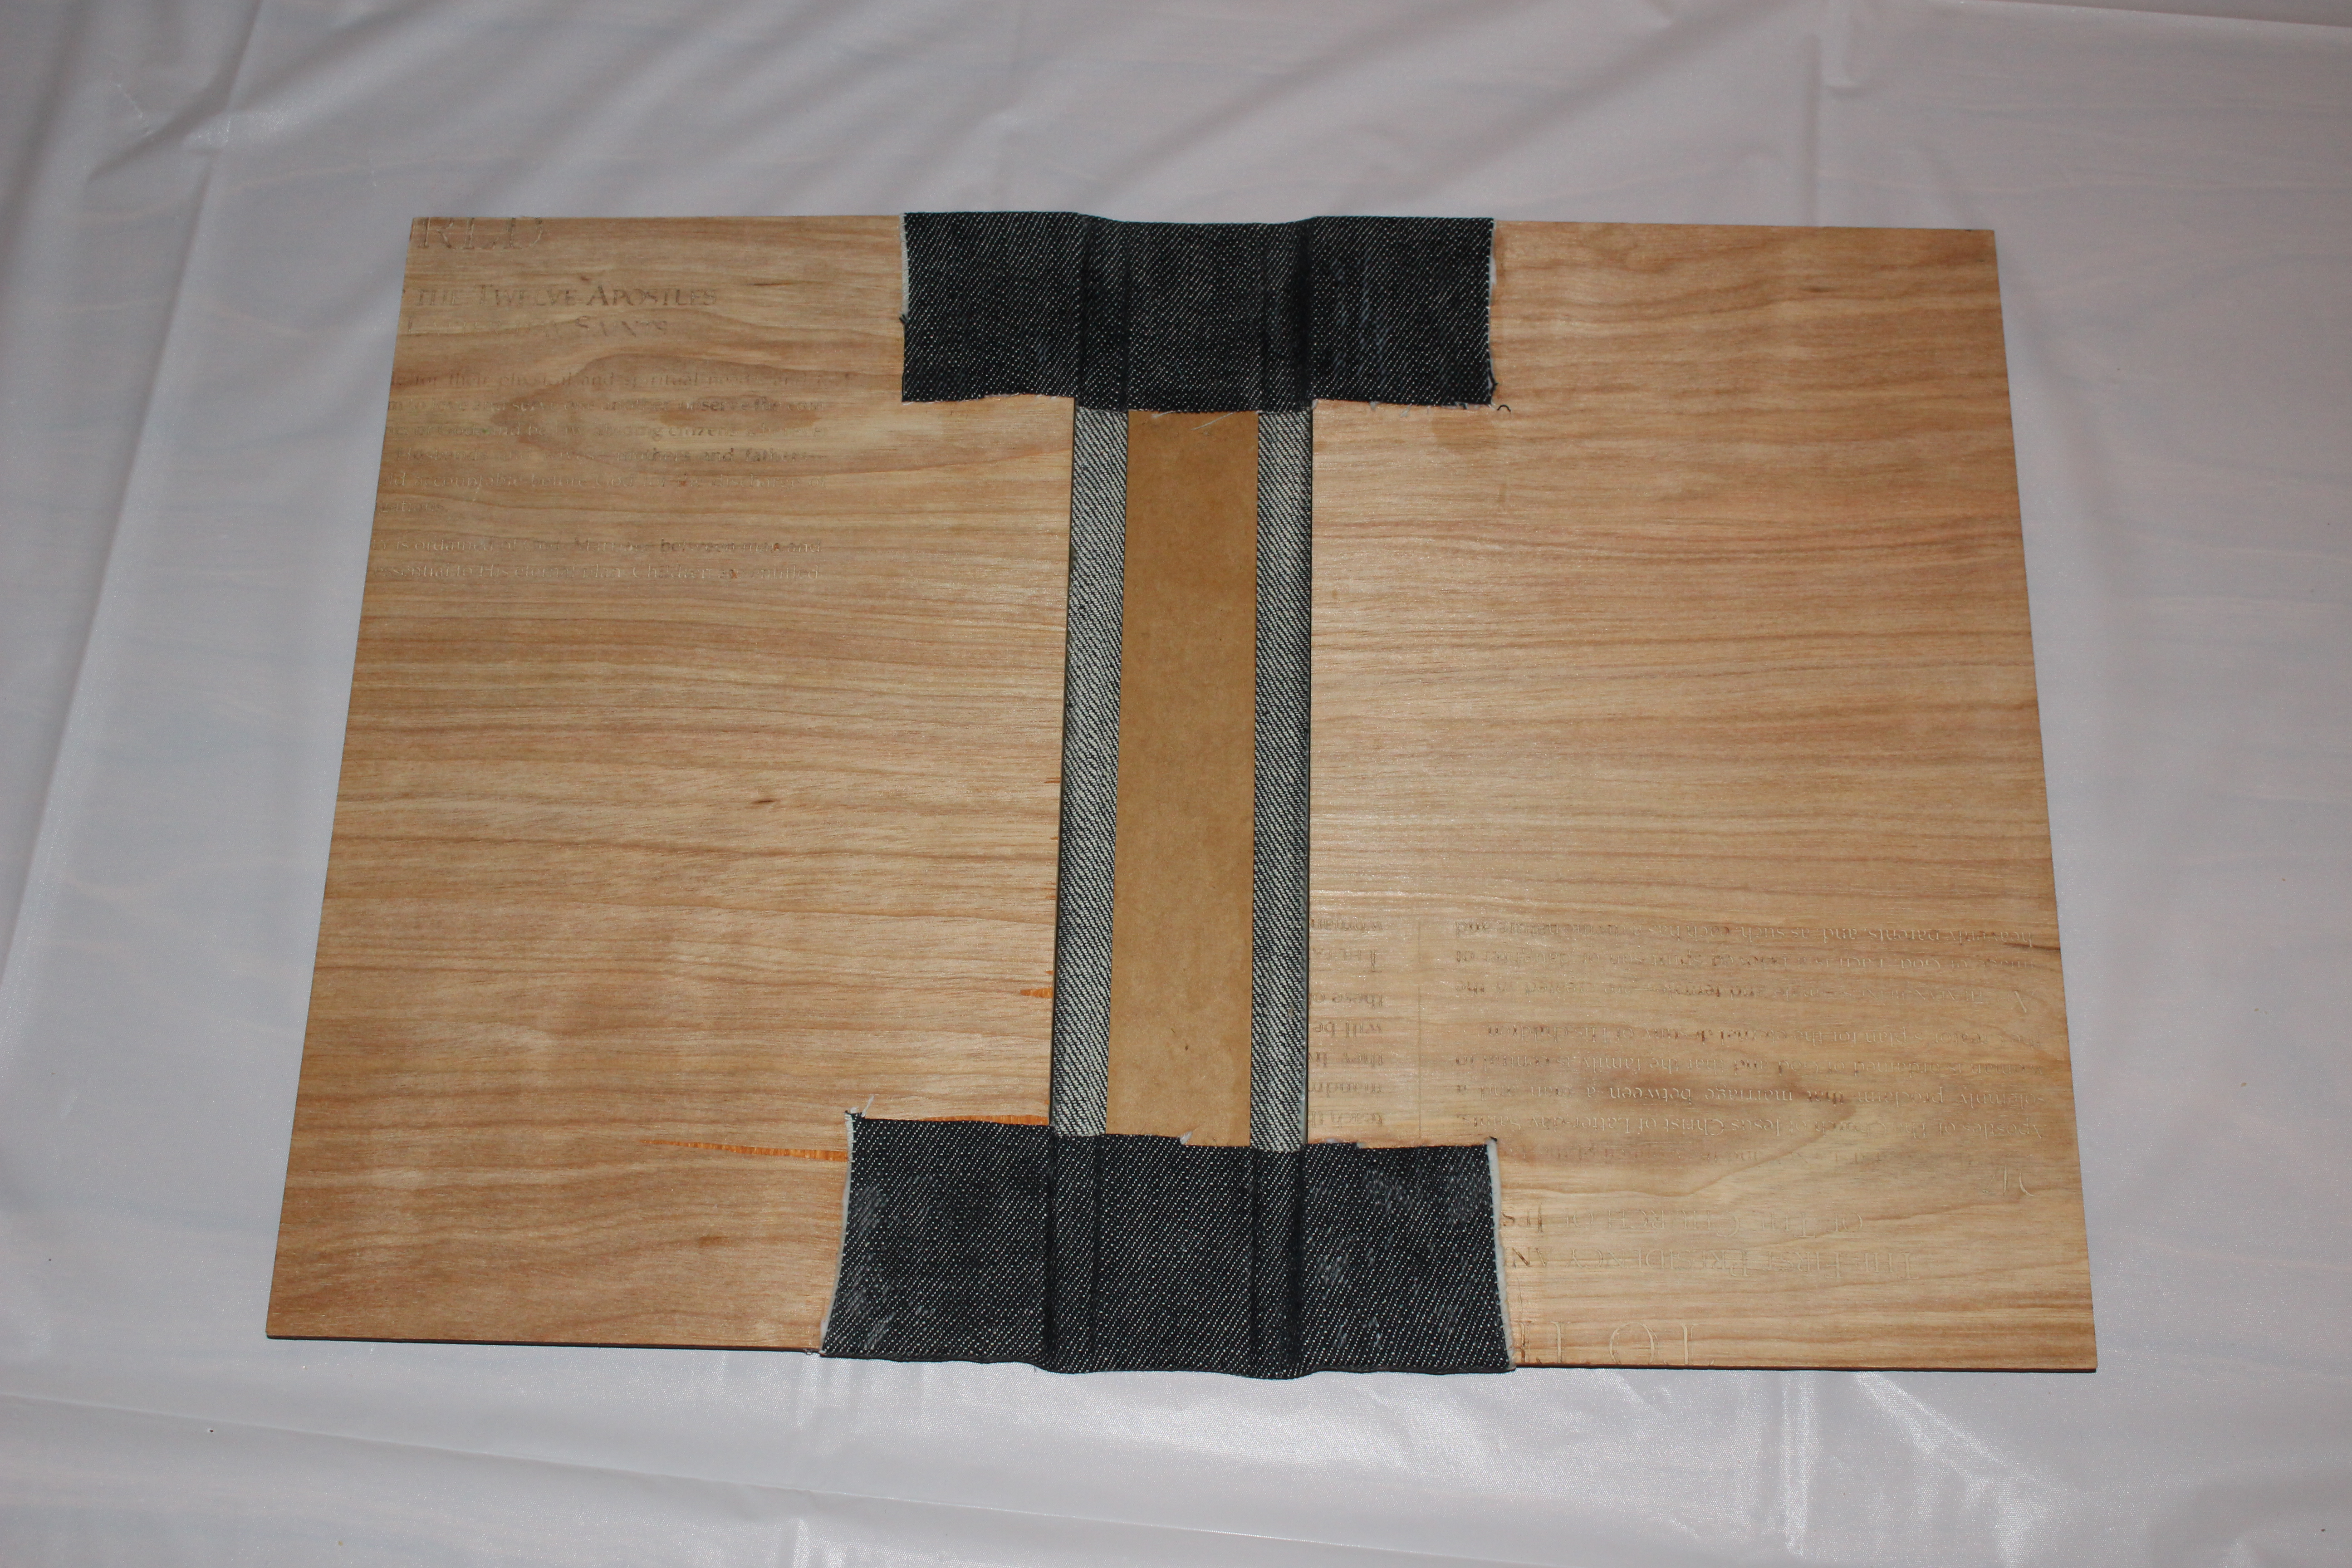 Picture of Attach Spine and Cover Boards to Cover Material